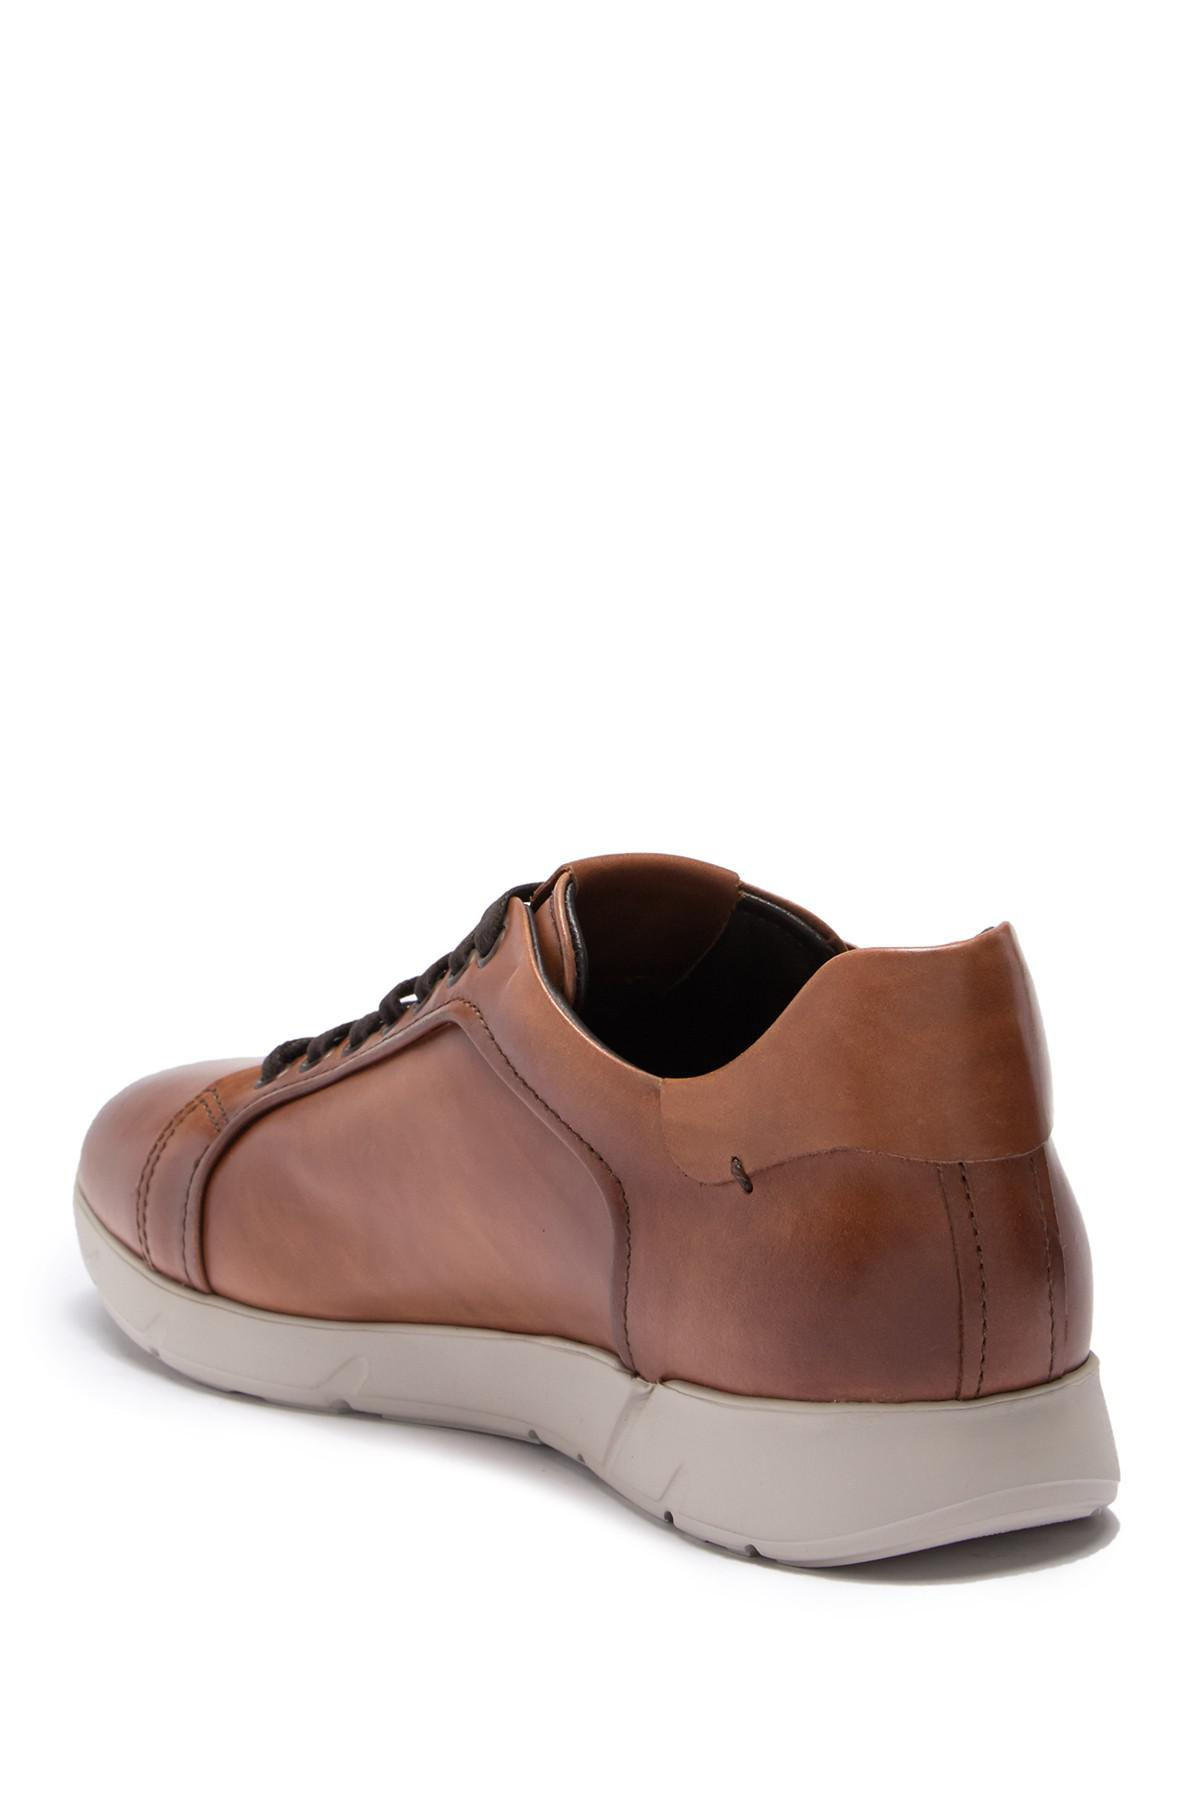 Bruno Magli Mens Parson Oxford